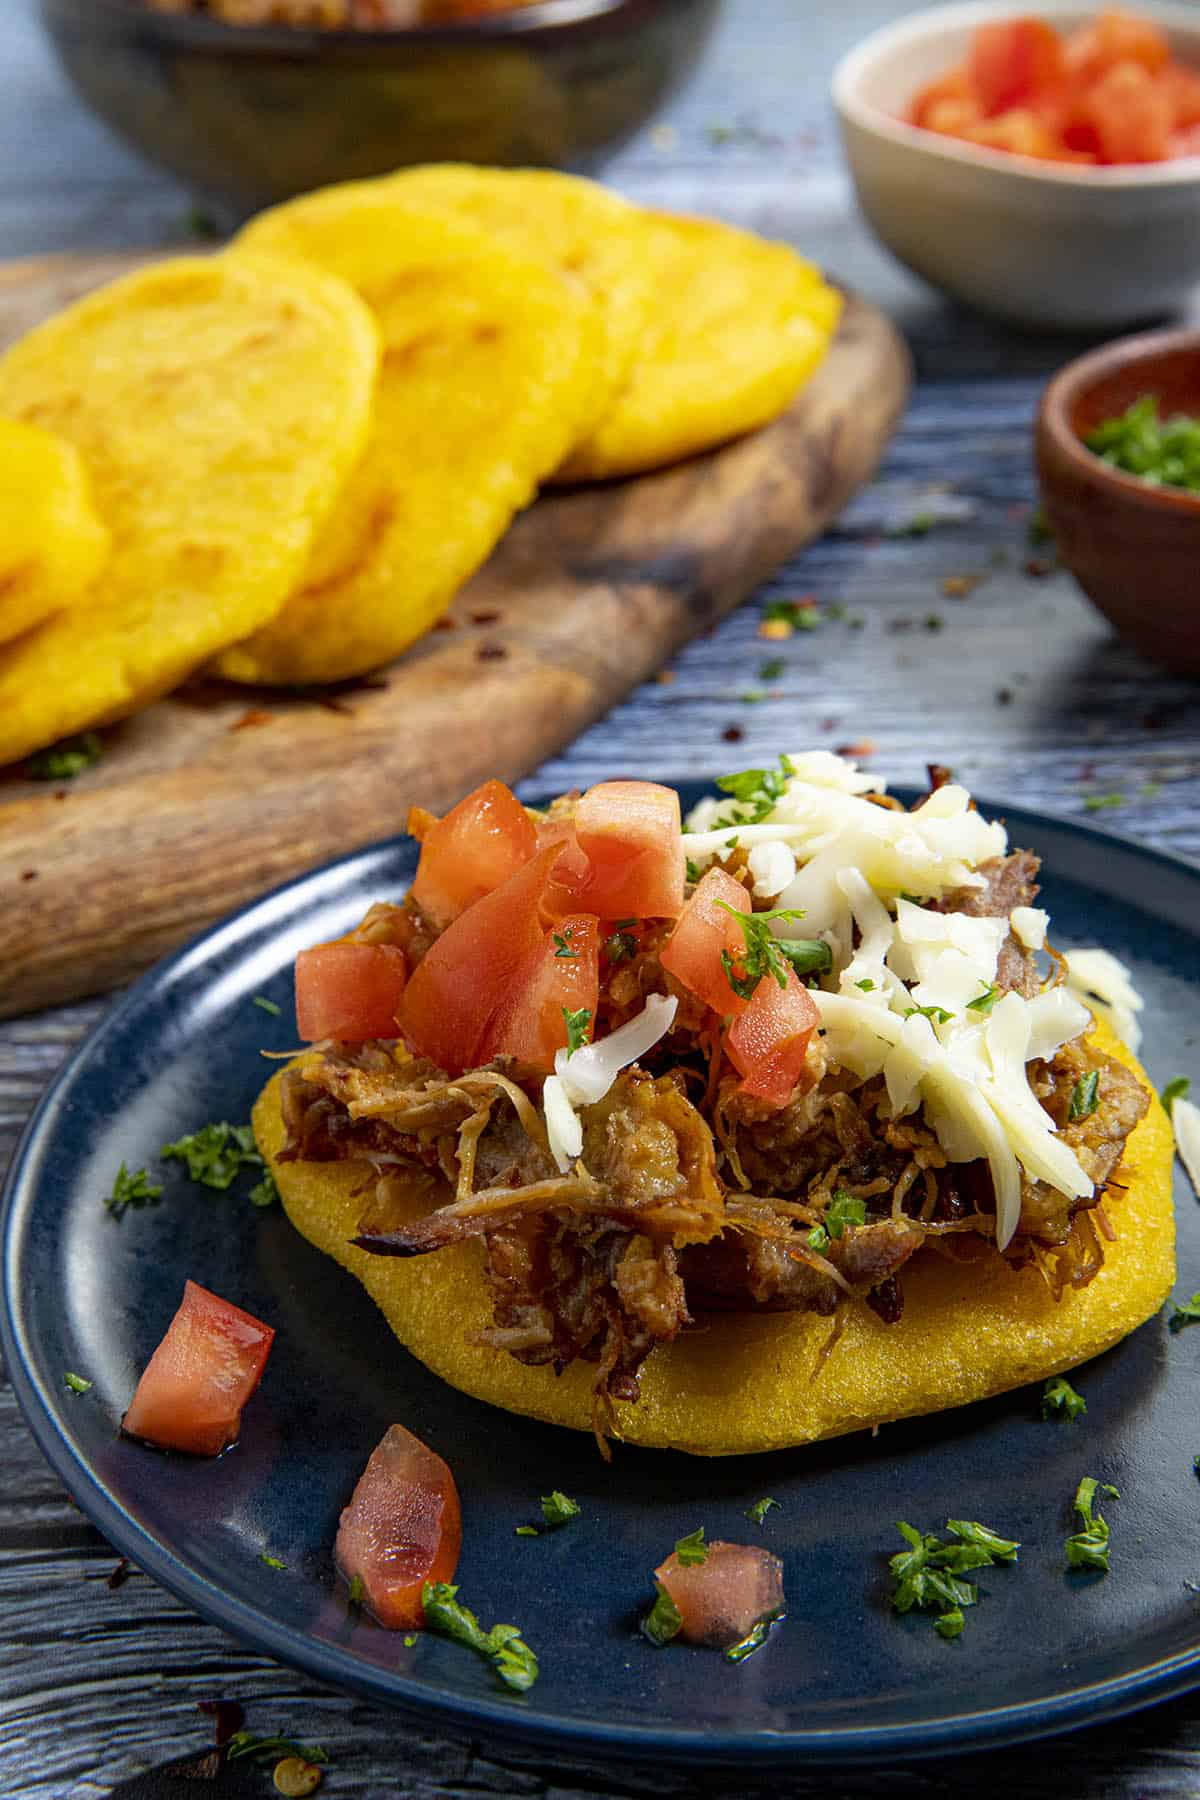 An arepa topped with pulled pork, shredded cheese and tomatoes